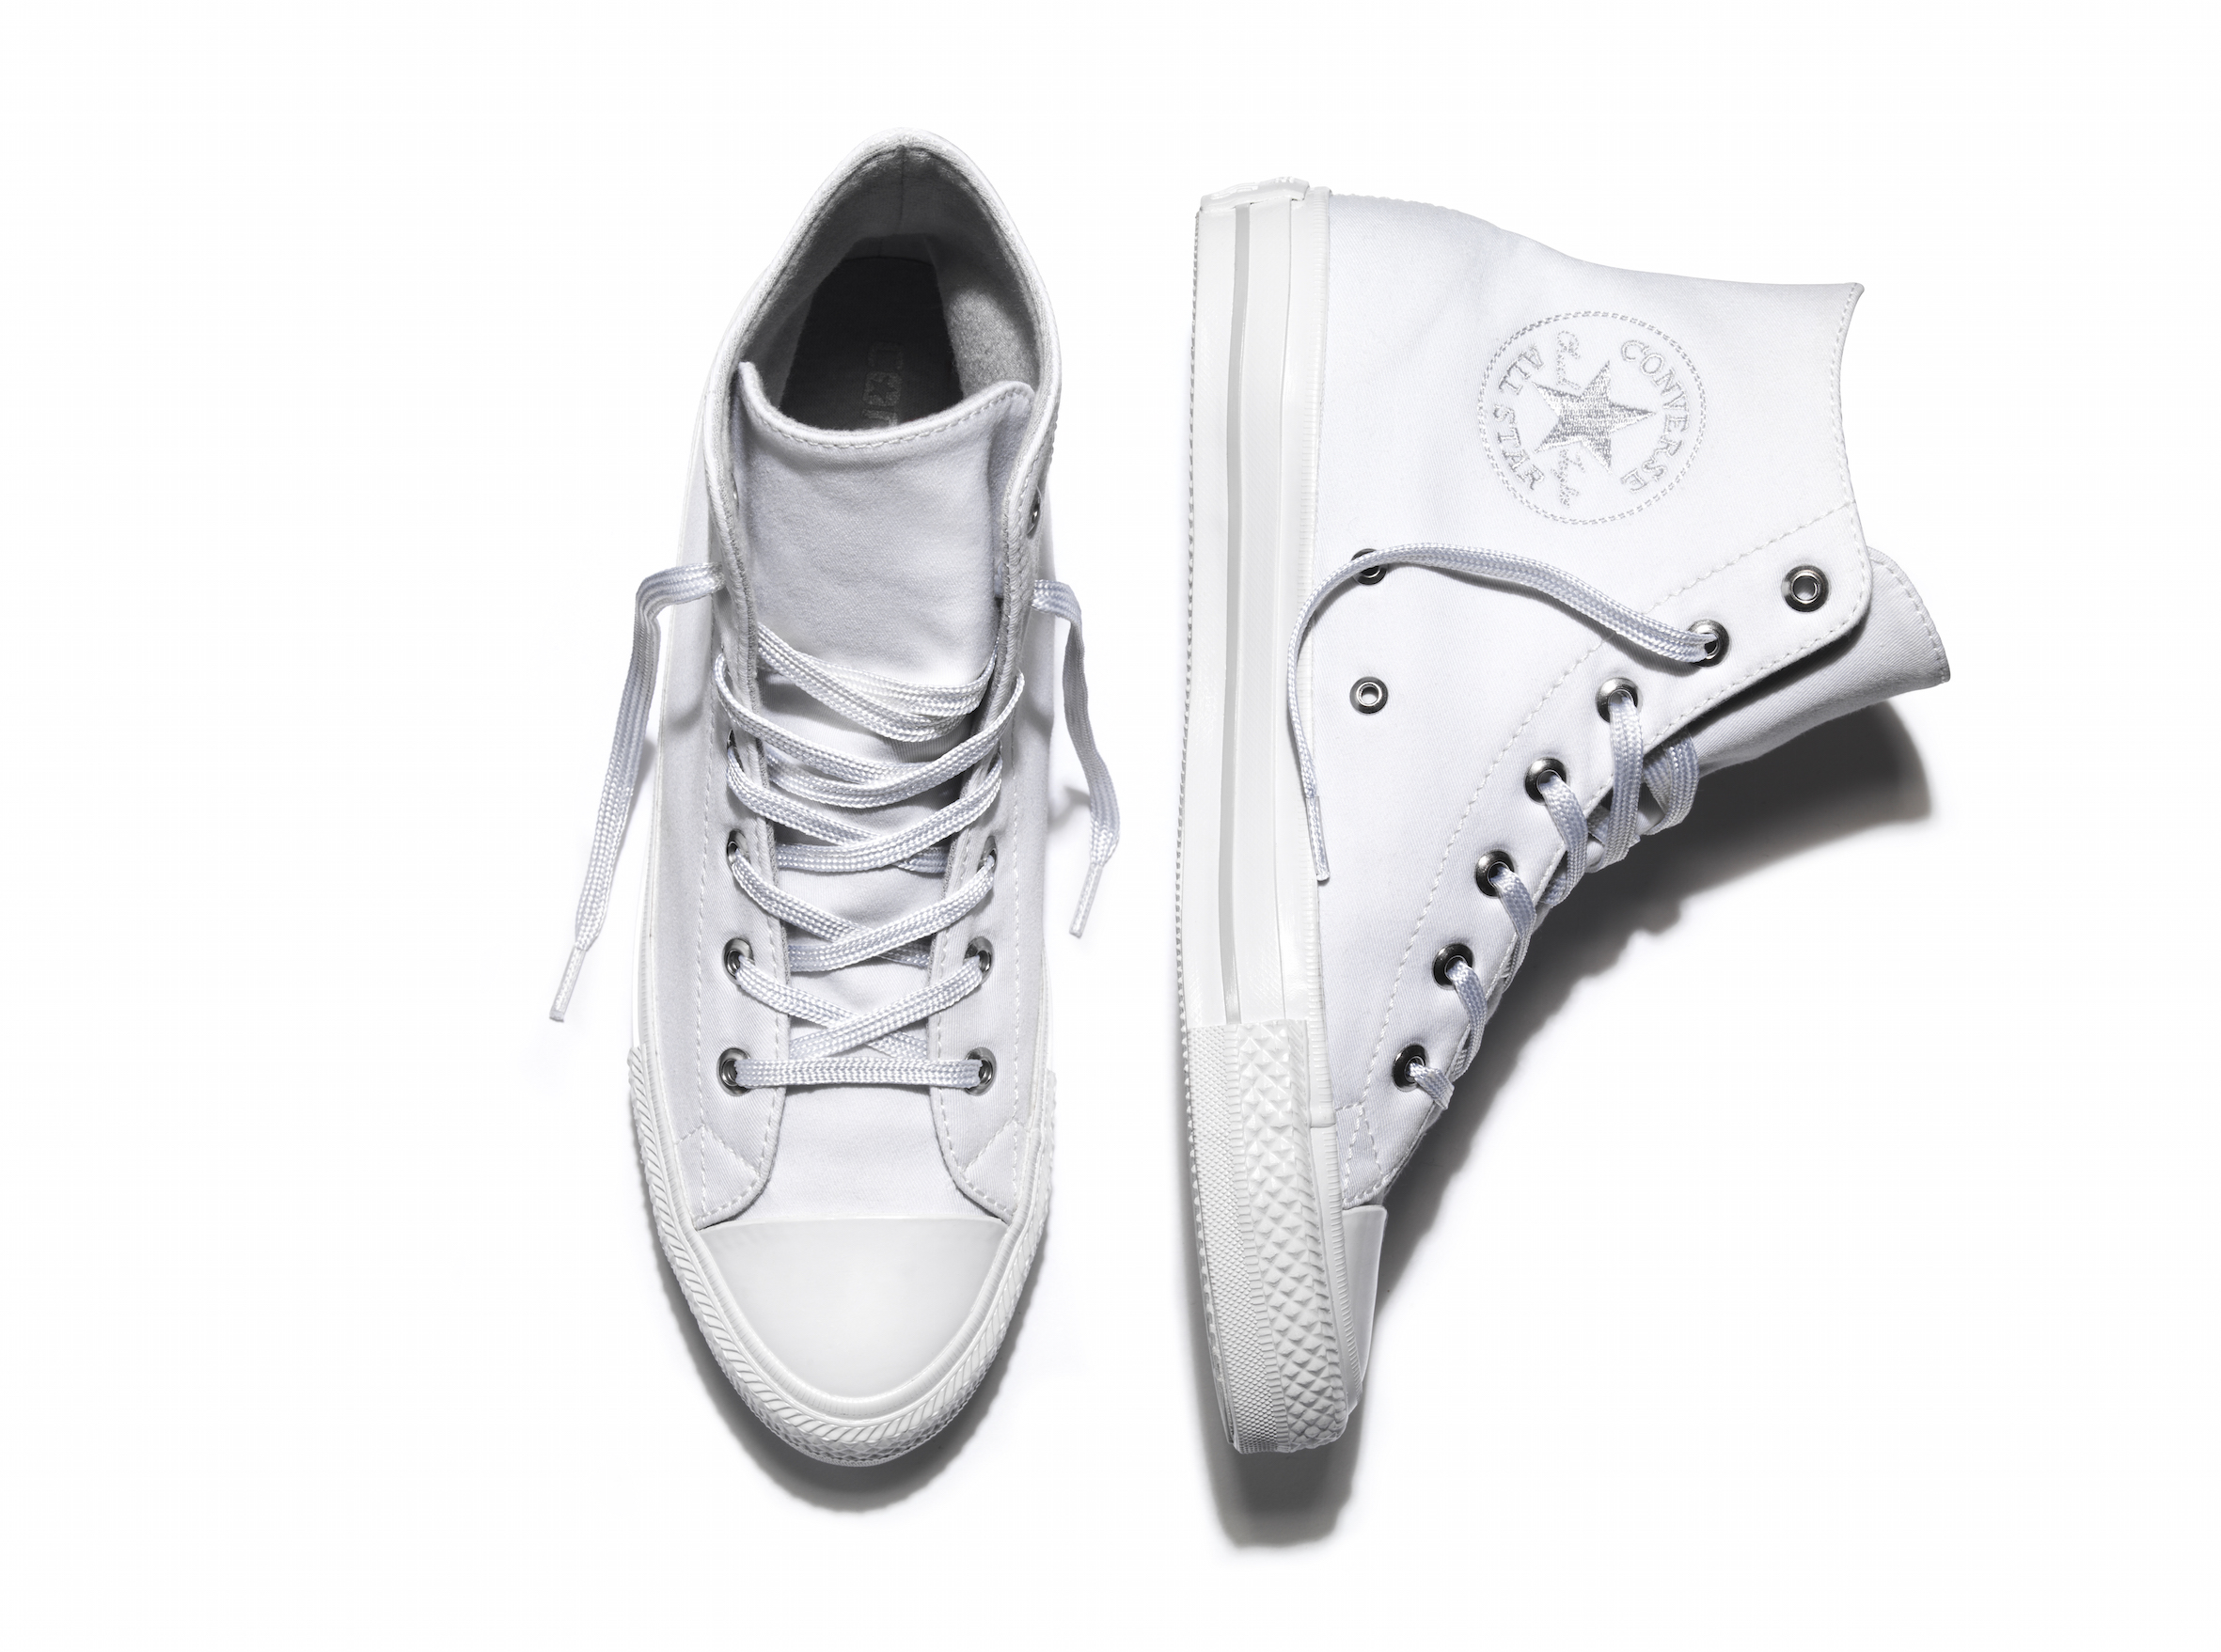 ae77cf6e2a3a CONVERSE  Chuck Taylor introduces a couture-inspired almond toe shape    metallics